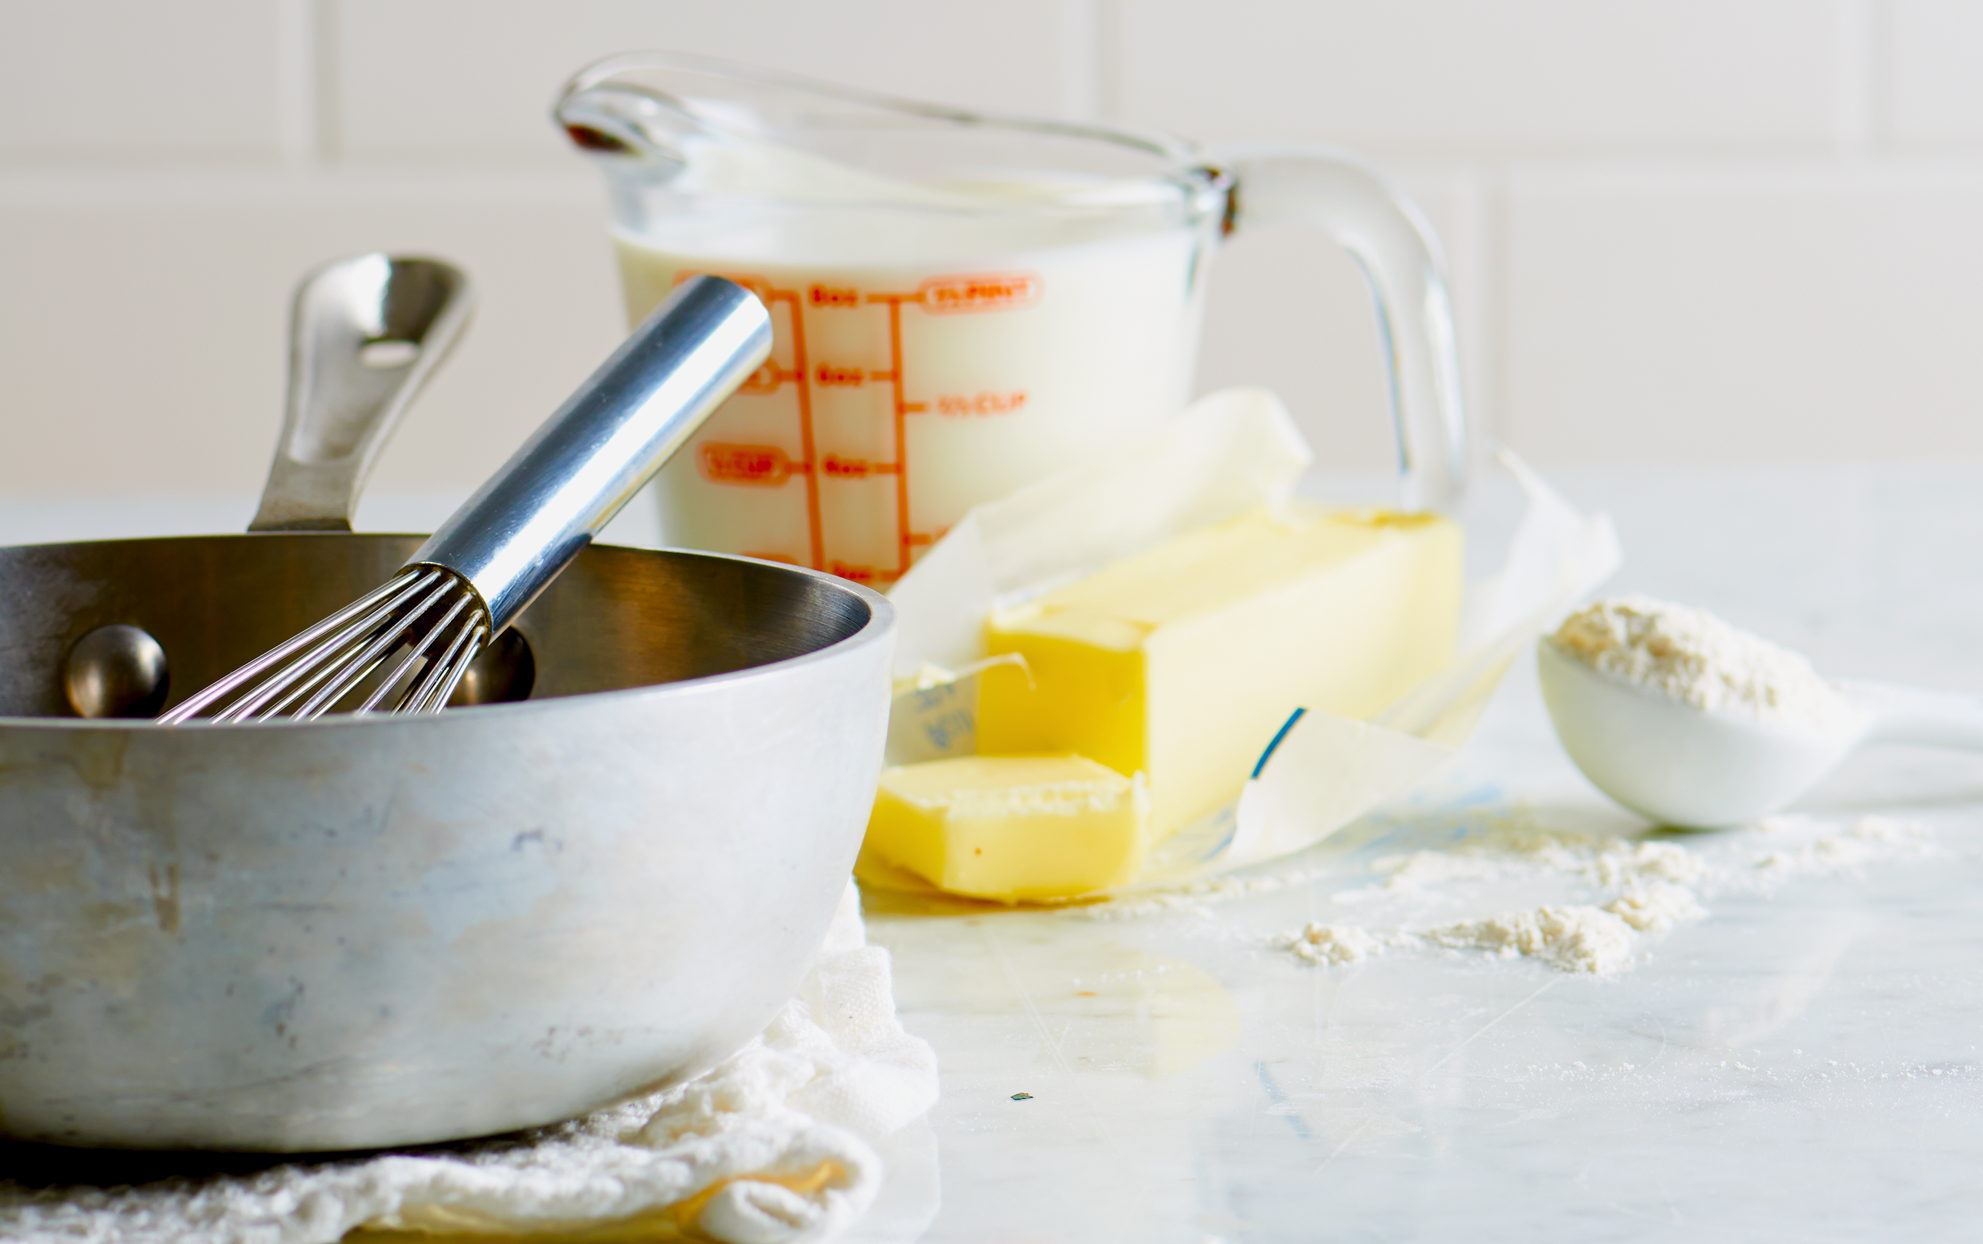 sauce pan, butter, flour and milk on a kitchen counter